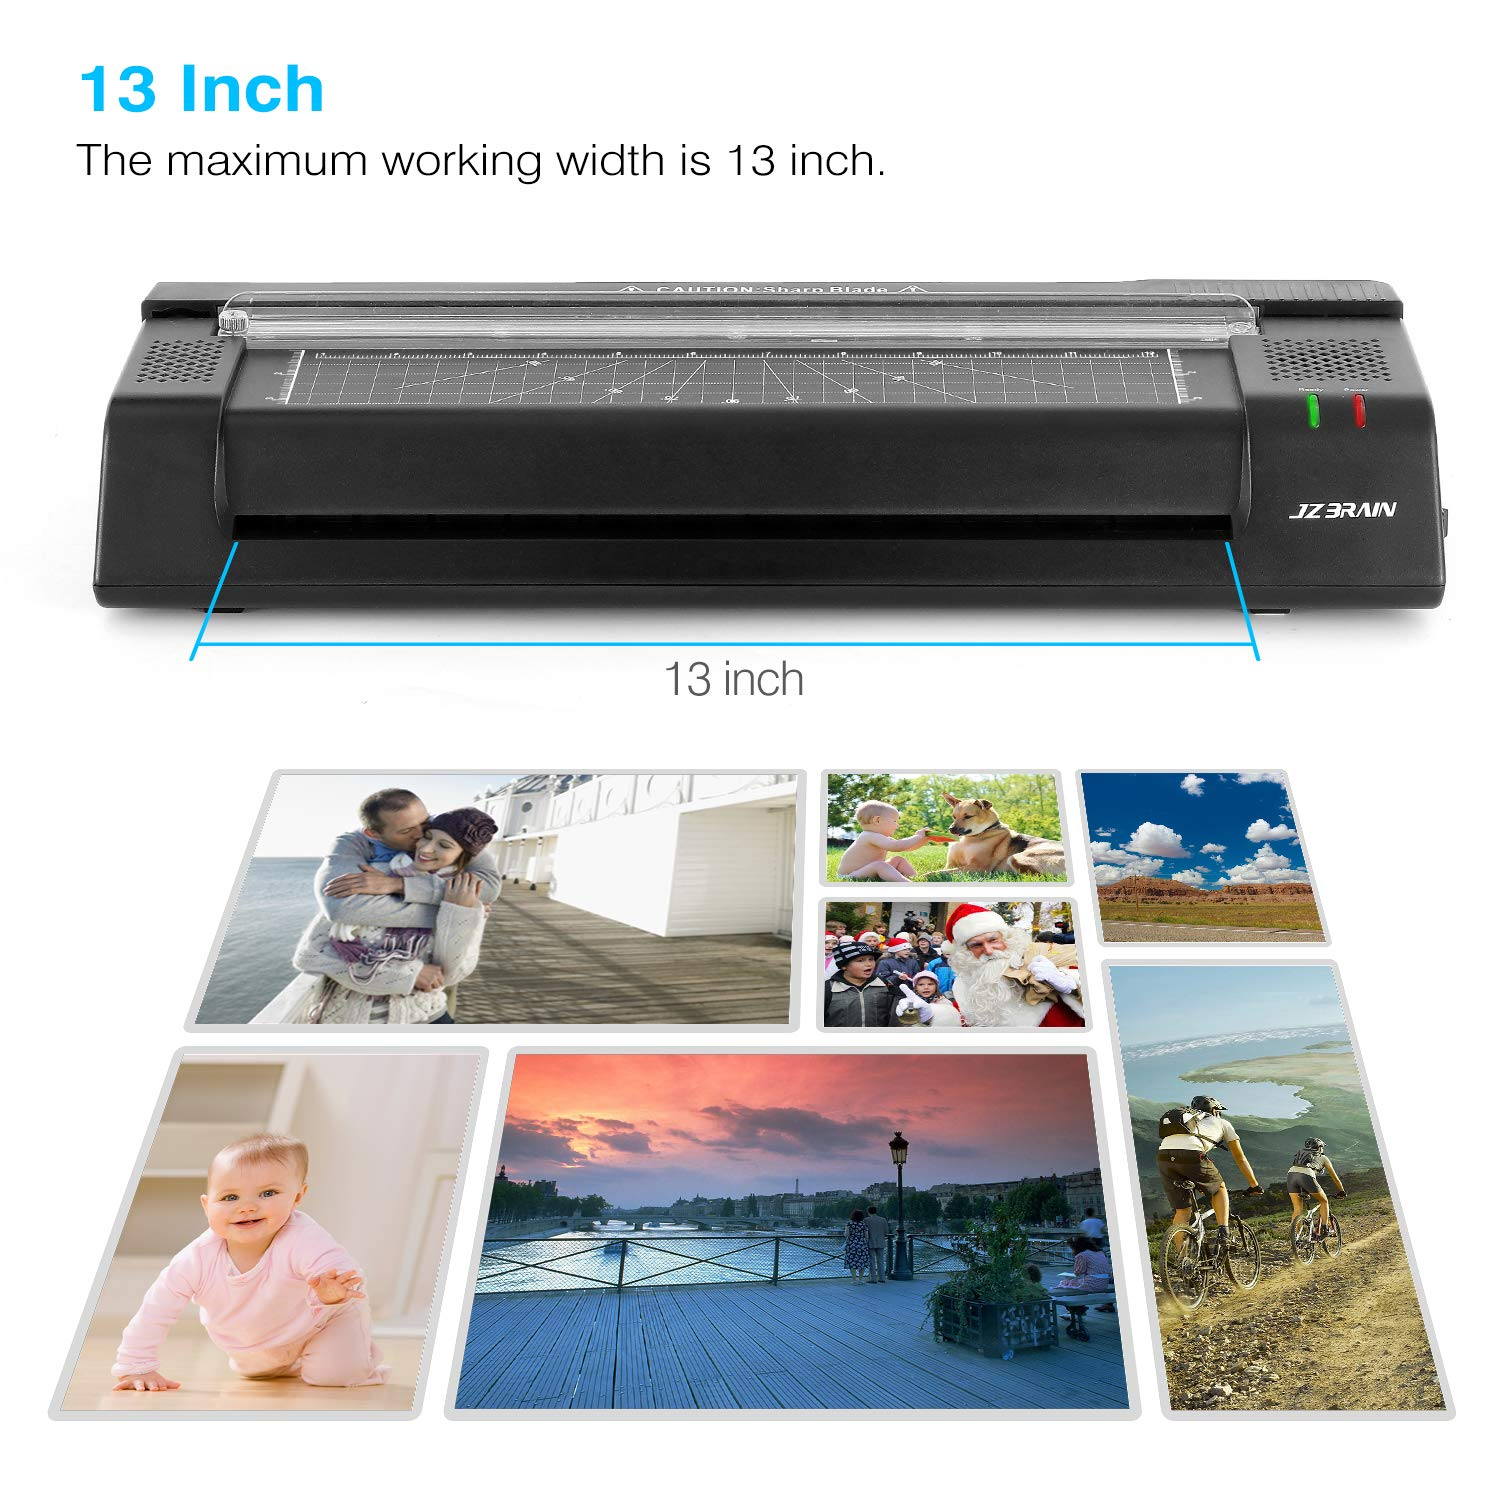 Free Function Fast Speed Thermal Laminating Machine with Trimmer and Corner Rounder for Home Office School Teachers JZBRAIN 13 Laminator Machine for A3 A4 A6 Two Roller Technology with Jam Black